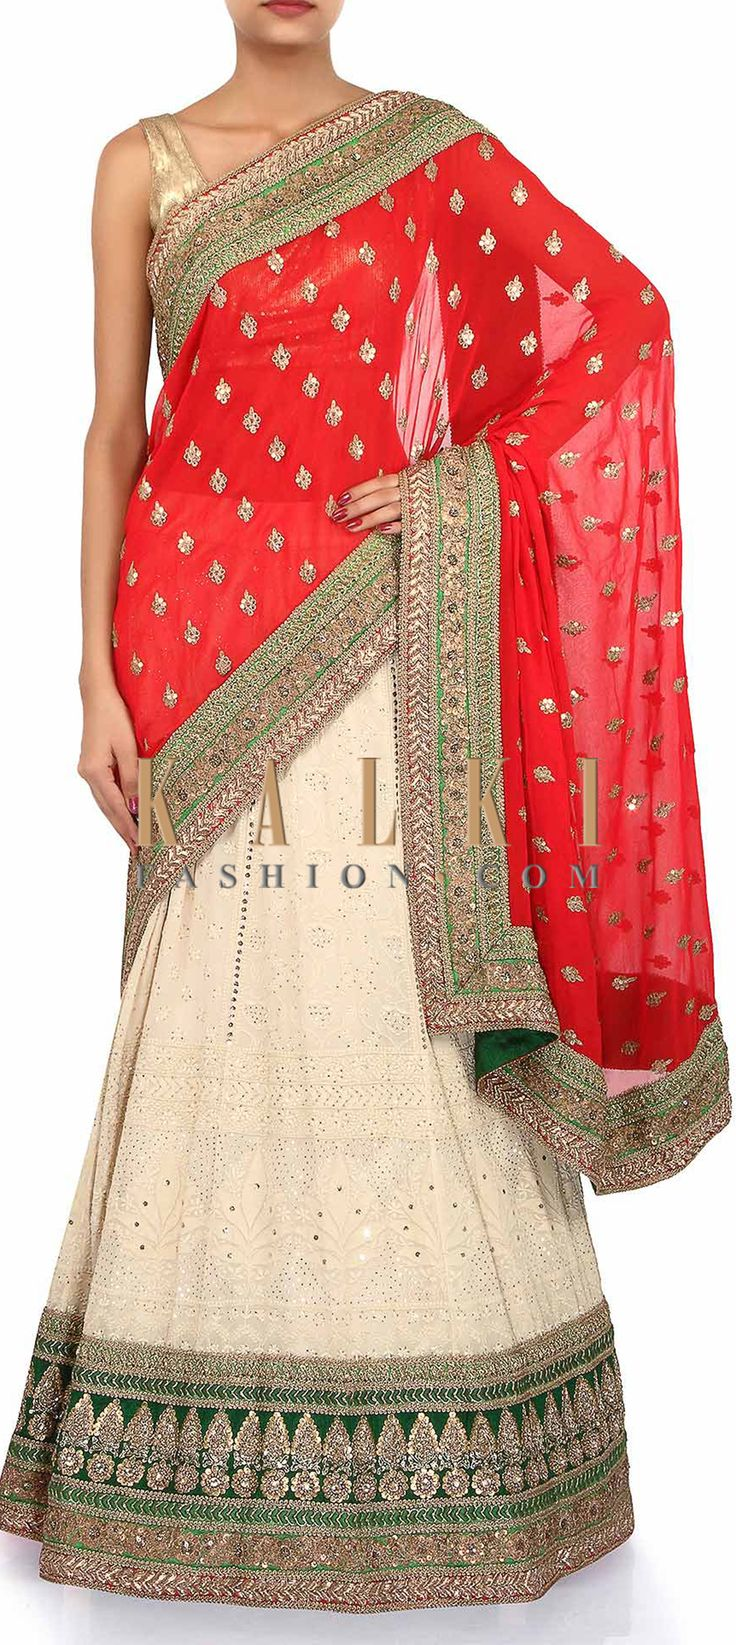 Buy Online from the link below. We ship worldwide (Free Shipping over US$100). Product SKU - 262172. Product Link - http://www.kalkifashion.com/half-and-half-lehenga-saree-in-red-and-cream-adorn-in-lucknowi-thread-embroidery-only-on-kalki.html